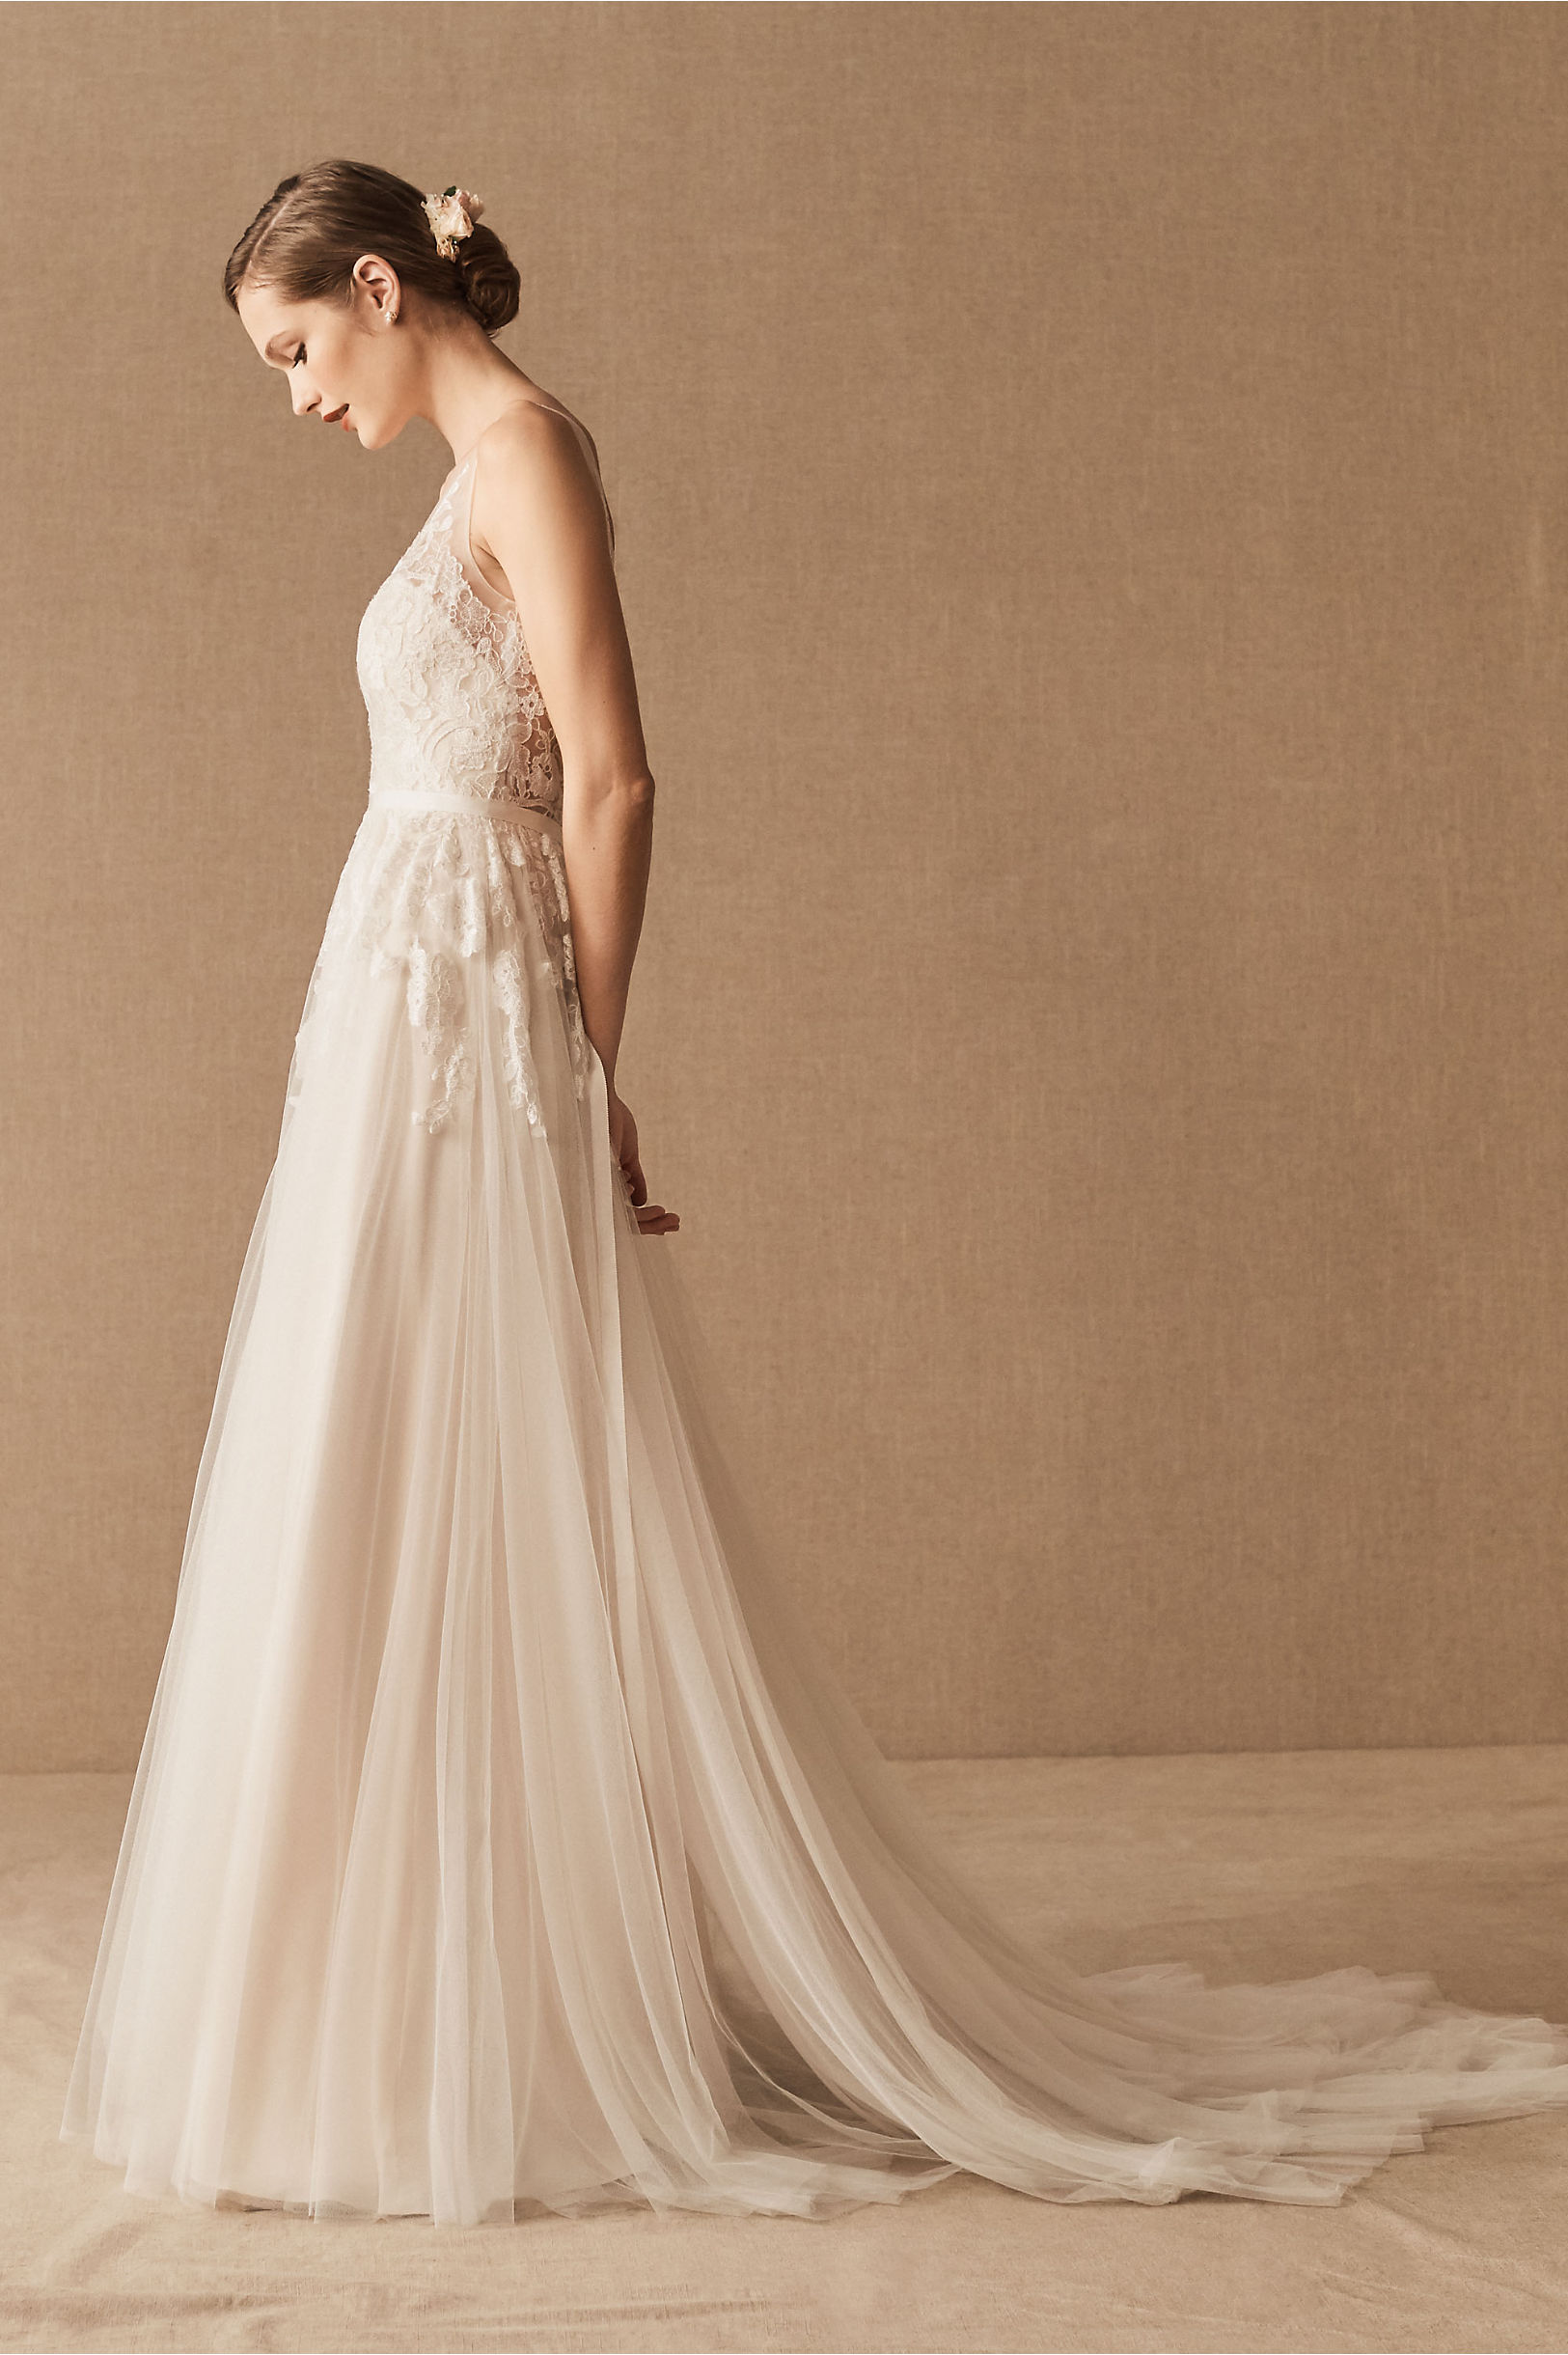 Wedding Dresses | Vintage & Simple Wedding Gowns | BHLDN